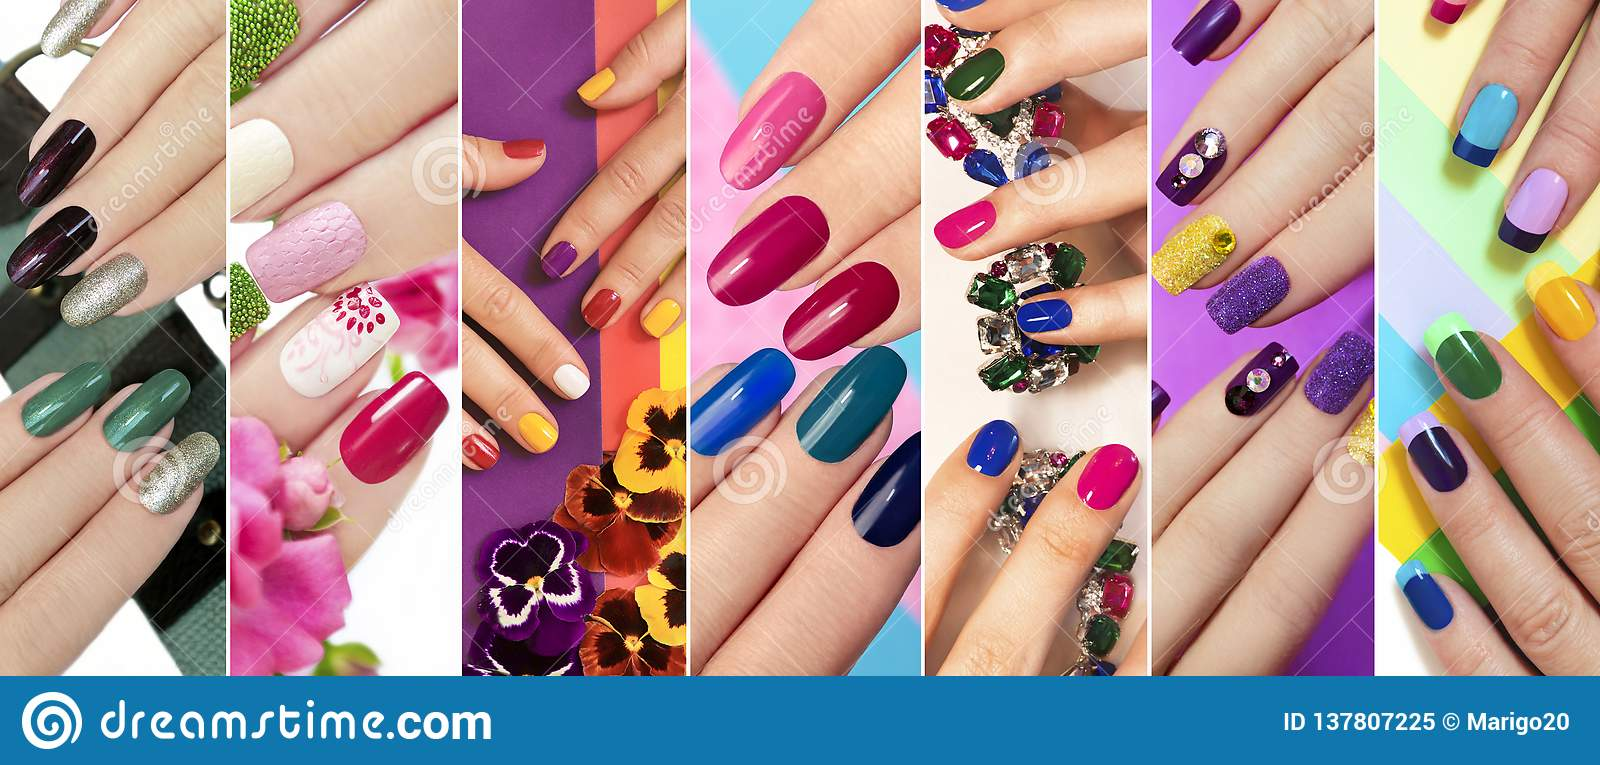 Solid Color Manicure With Bright Nail Polishes. Stock Image - Image ...